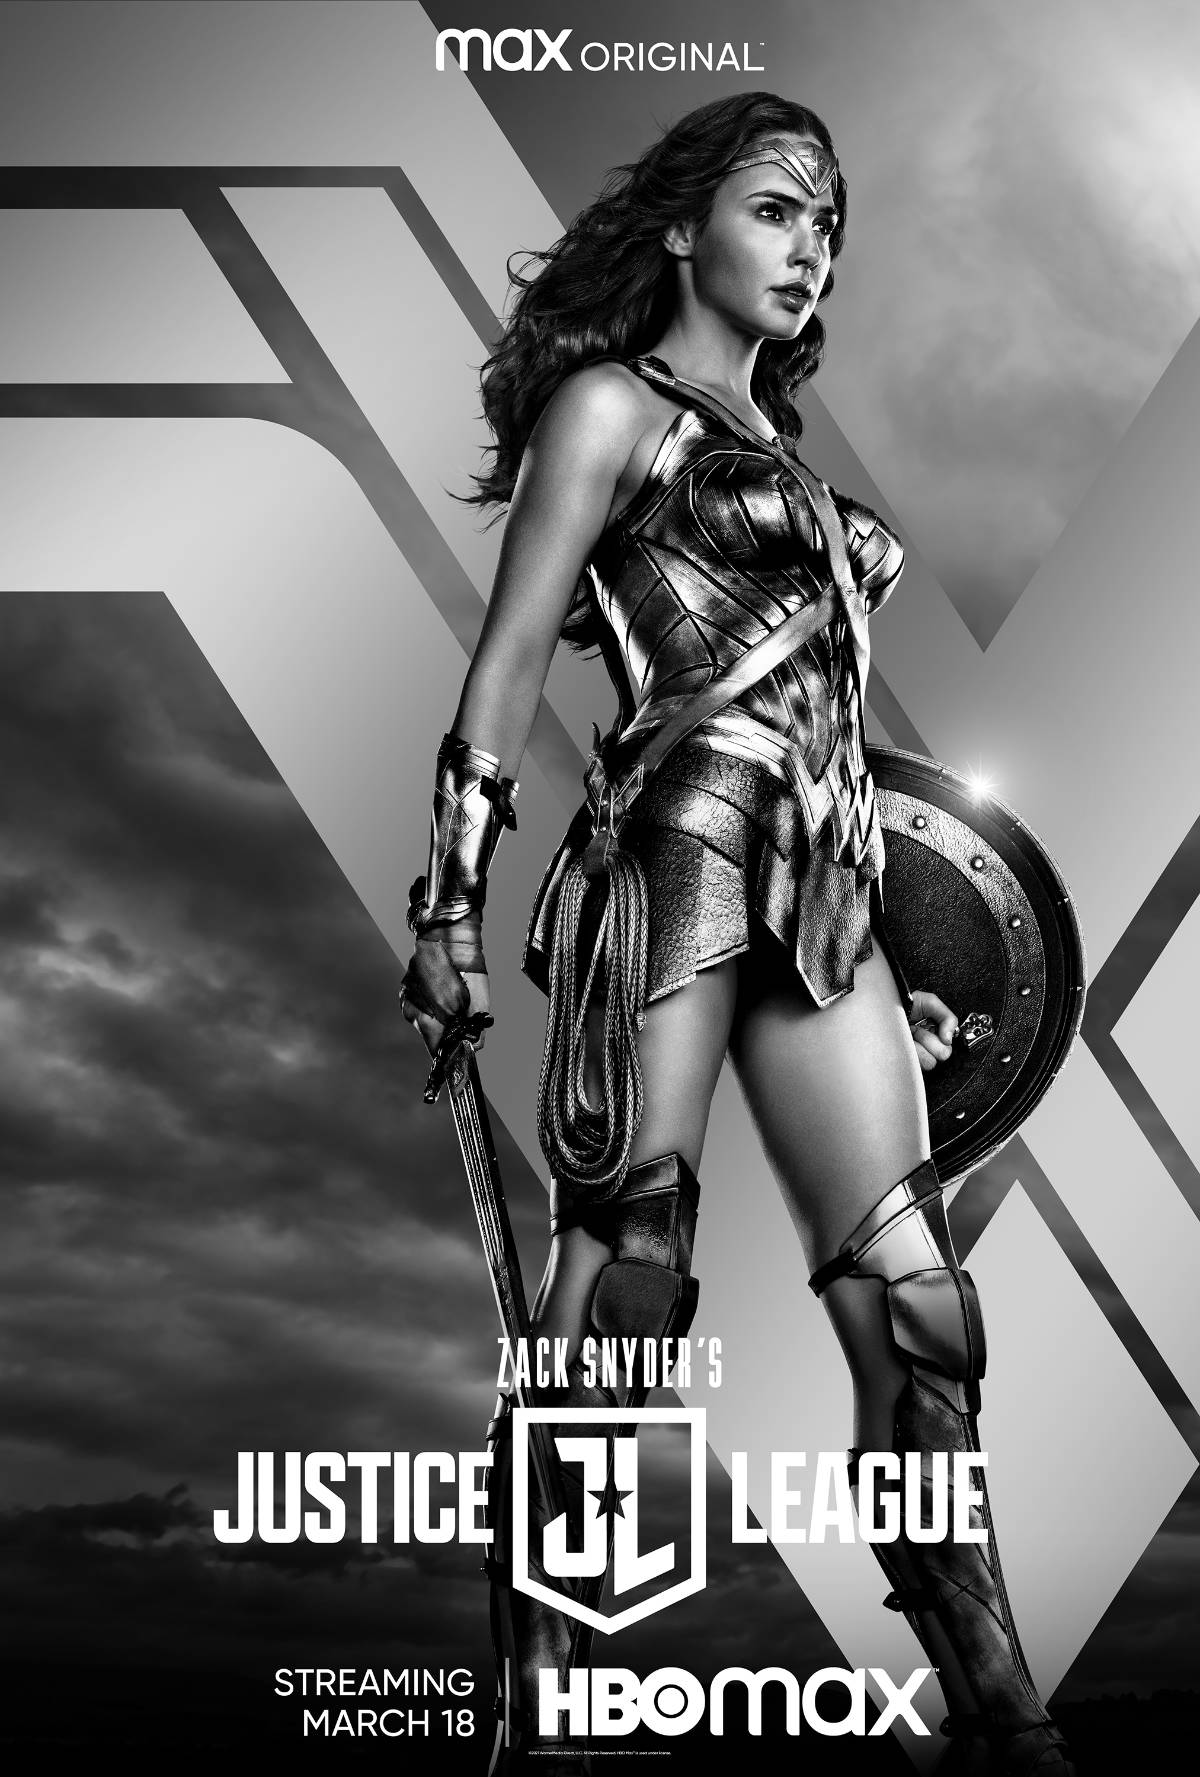 Zack Snyder Tweets Out New Justice League Character Posters